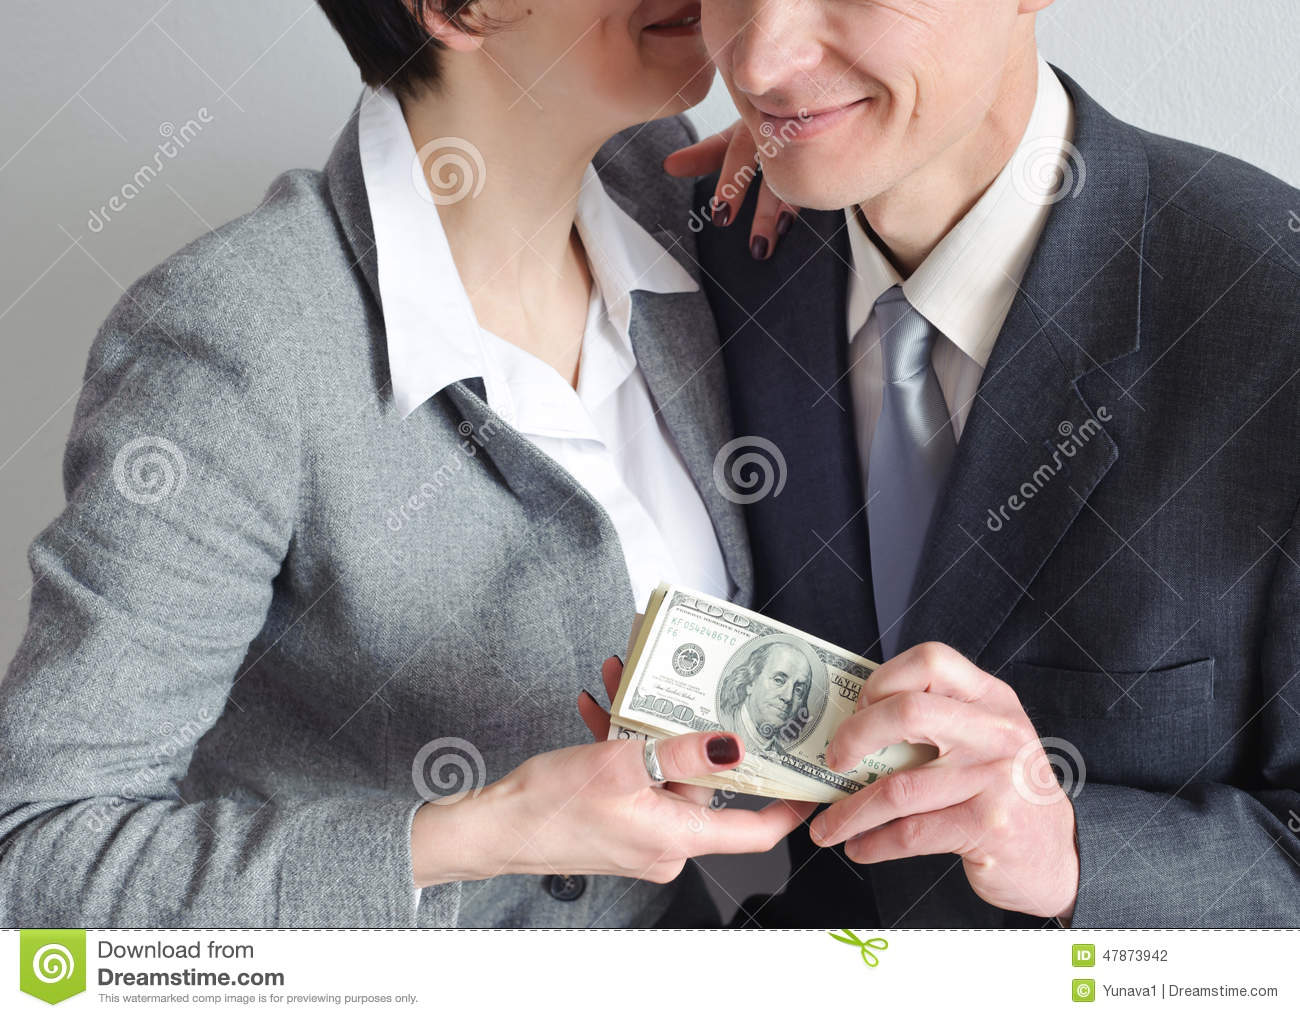 Transfer Money From Hand To Hand Stock Photo - Image of money ...